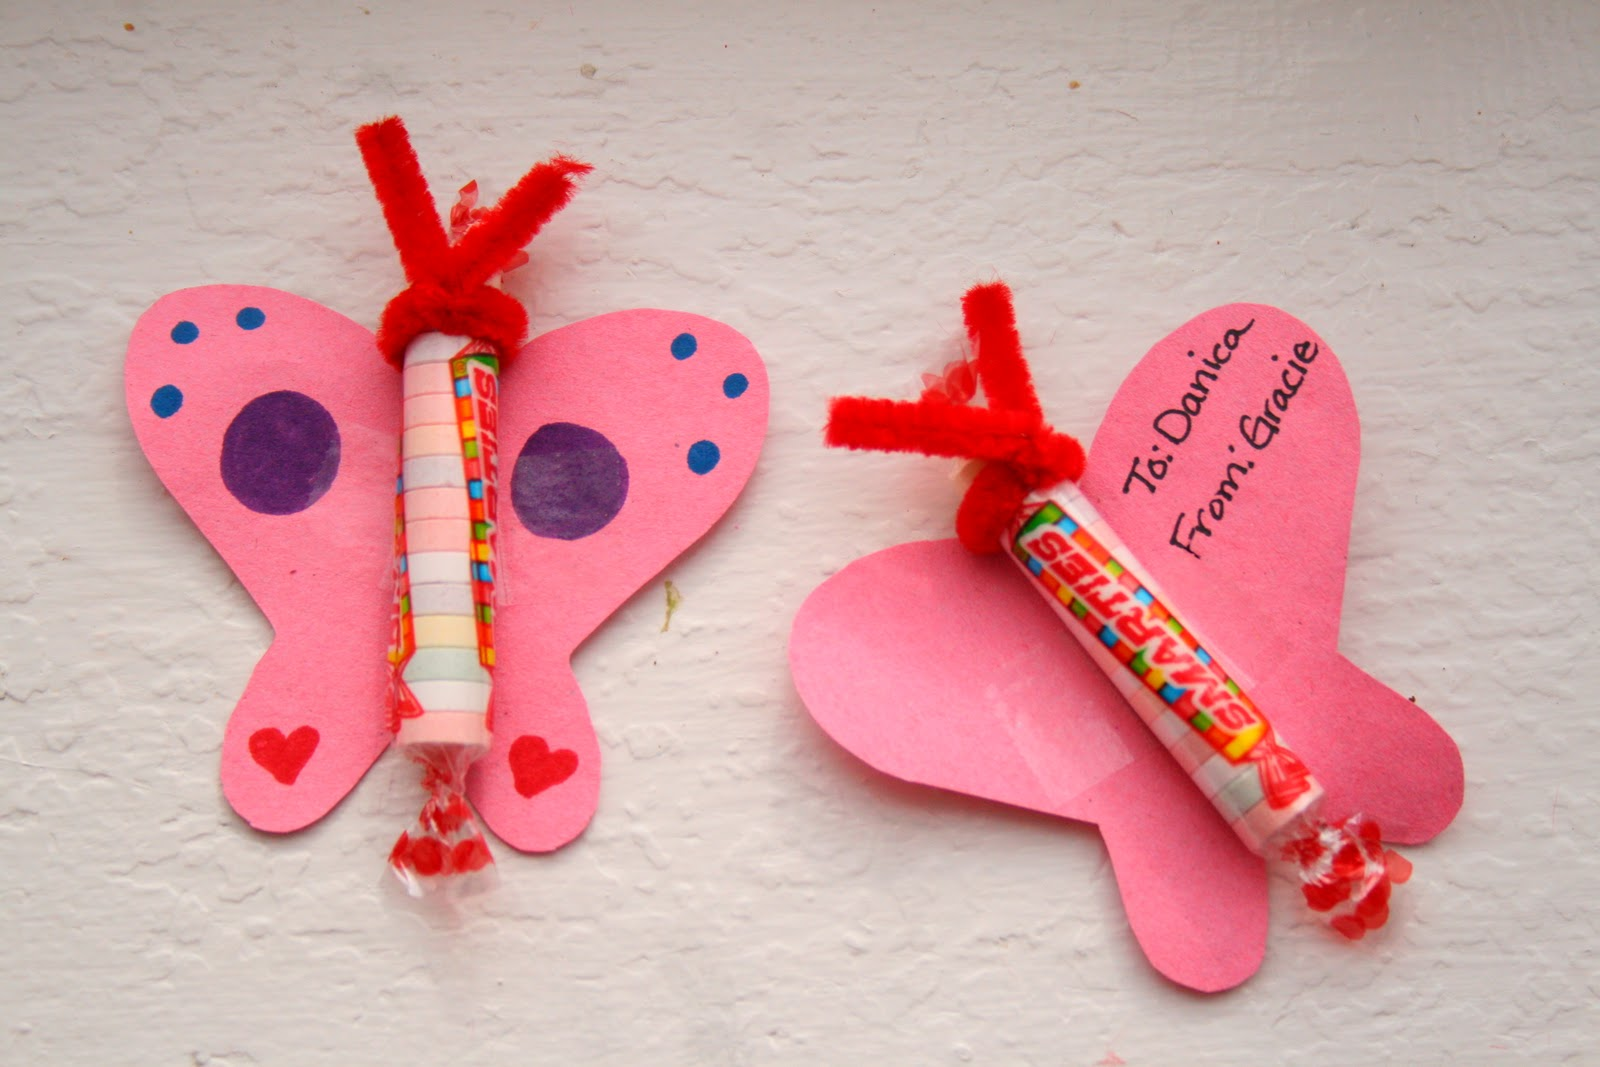 The nesting corral easy valentines day cards this is a great way to do homemade valentines day cards with your kiddos without having to do too much of the work yourself solutioingenieria Gallery